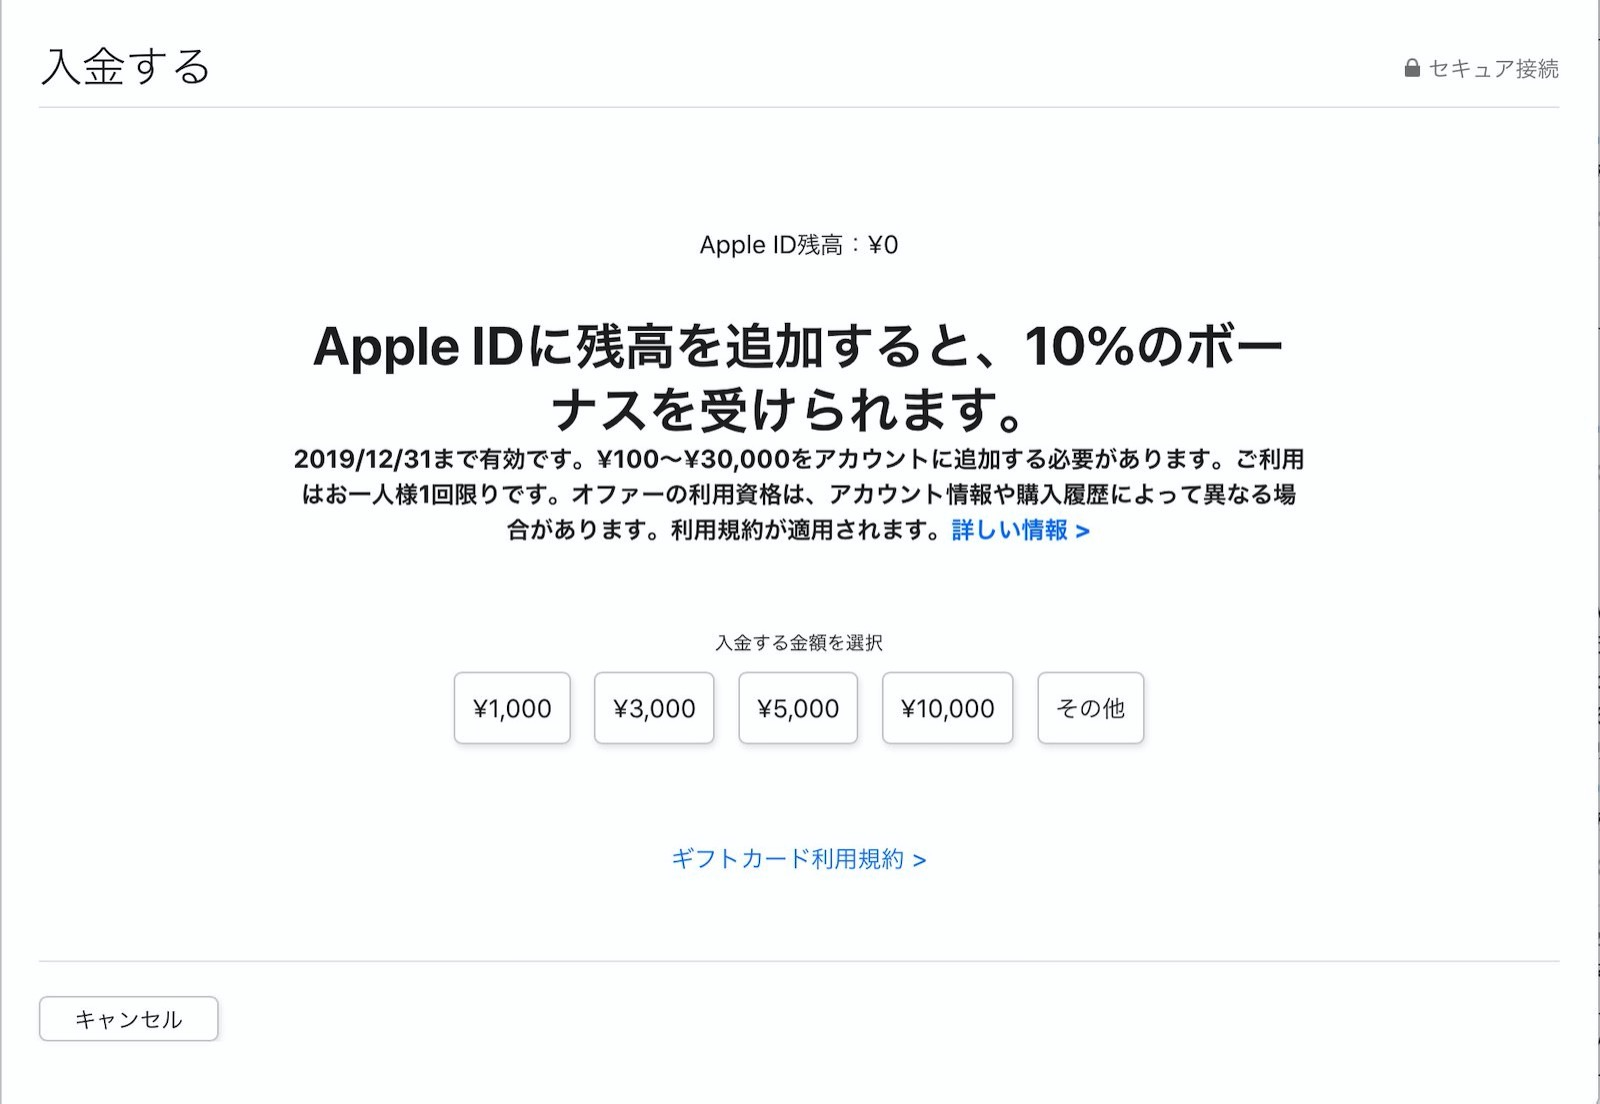 Apple ID bonus